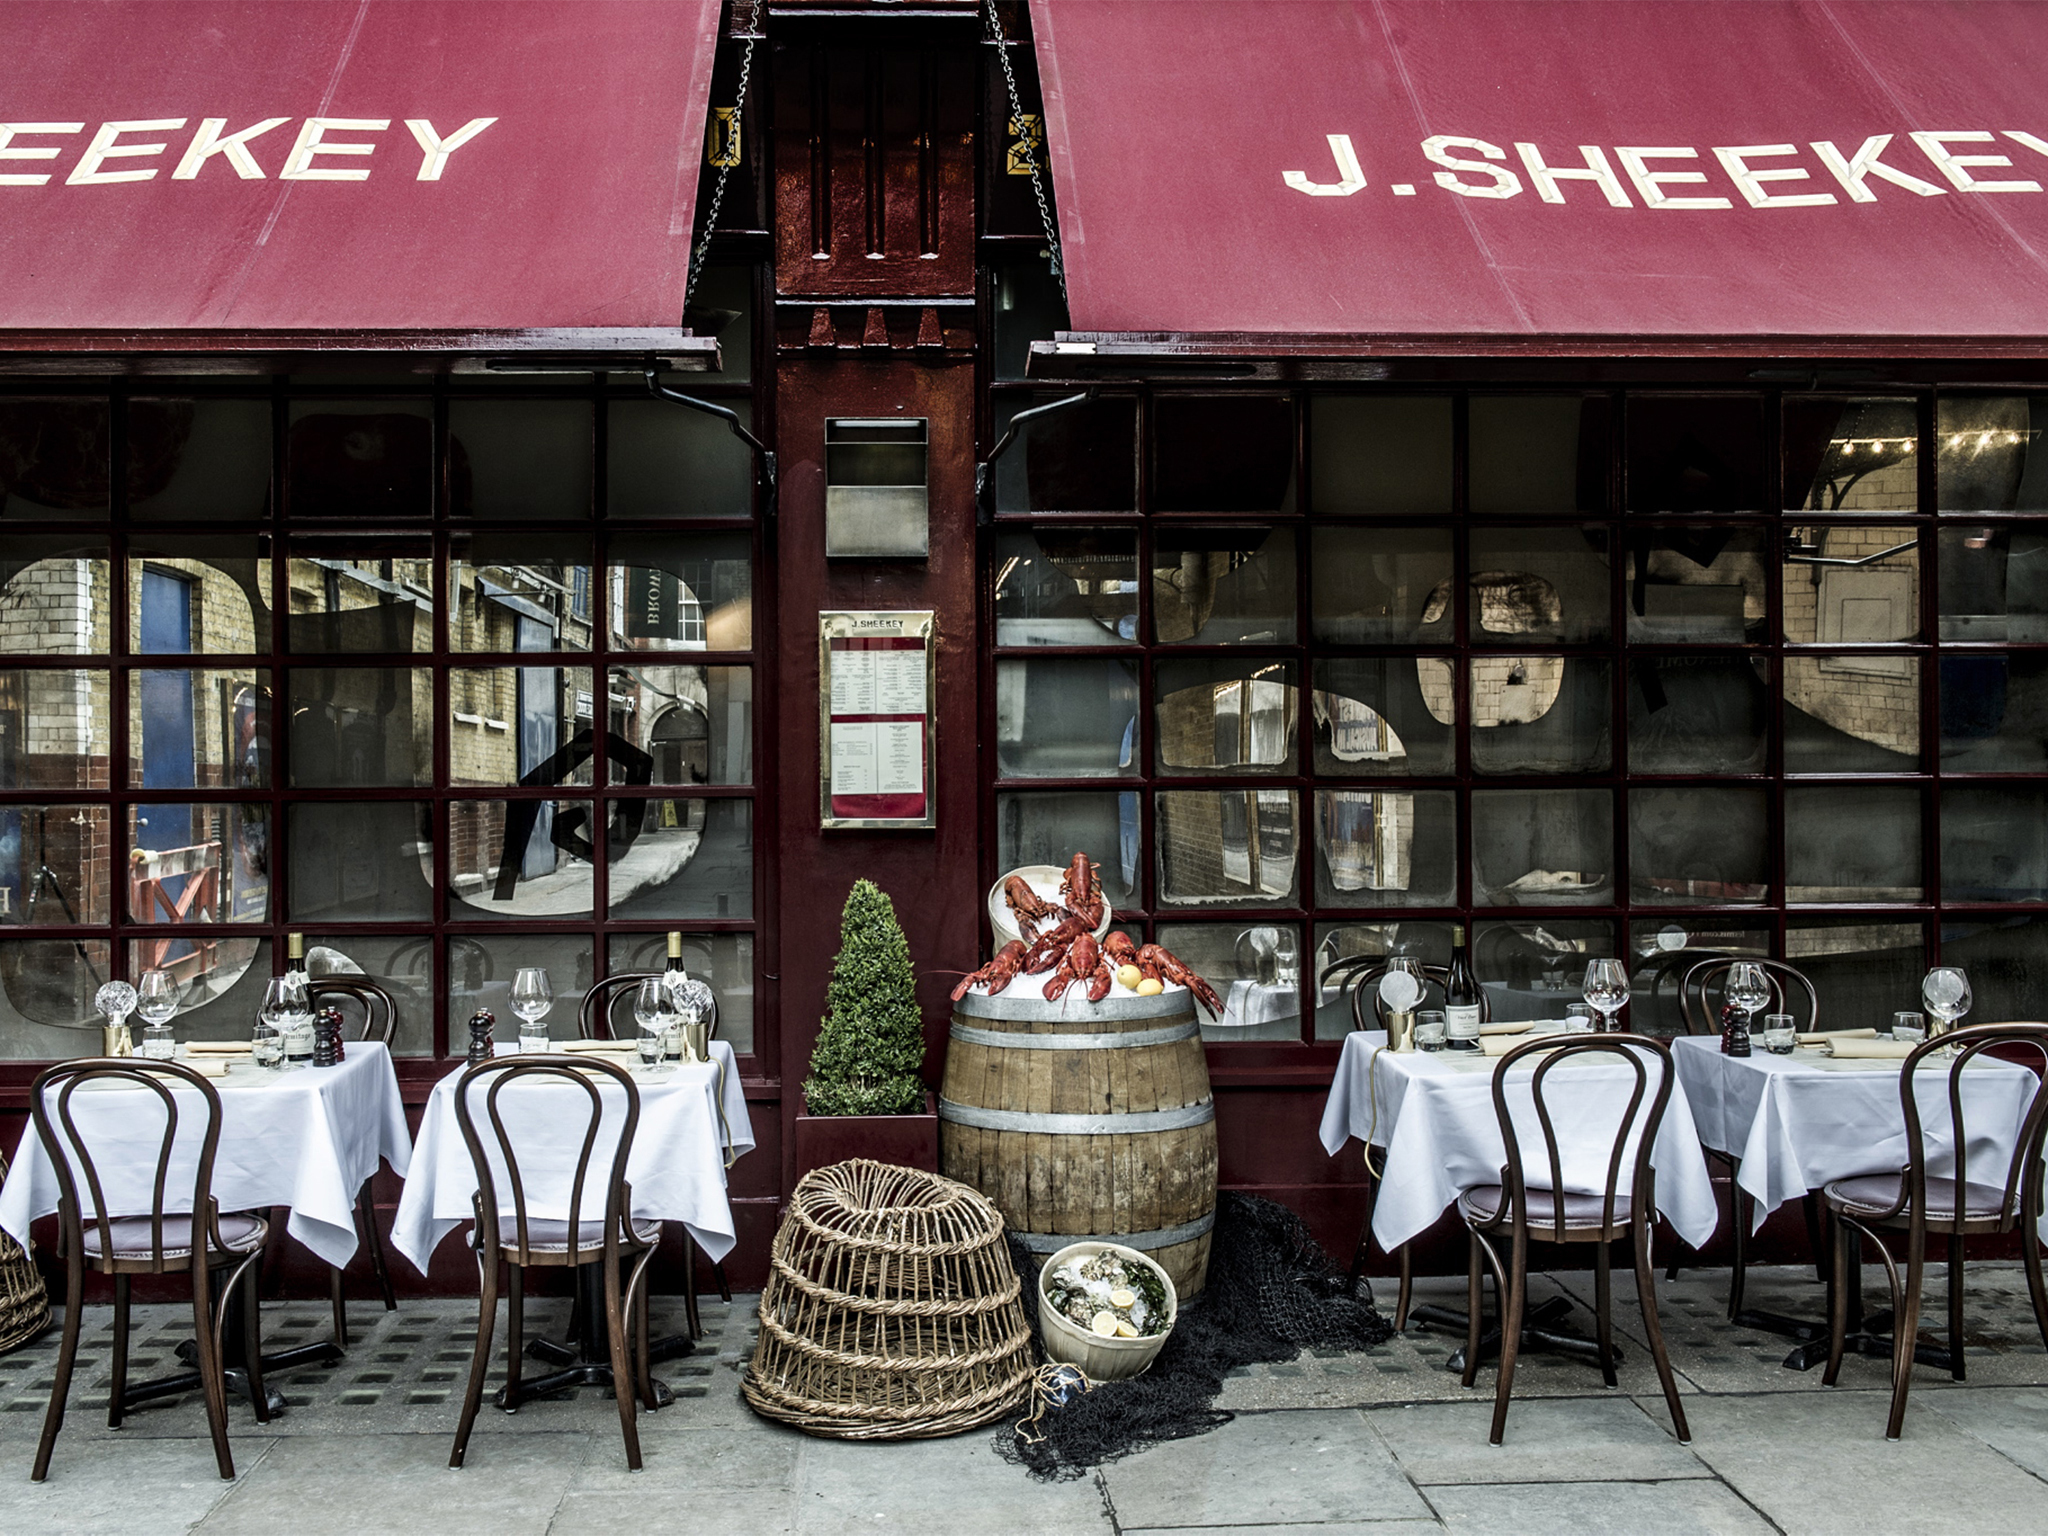 J Sheekey Oyster Bar